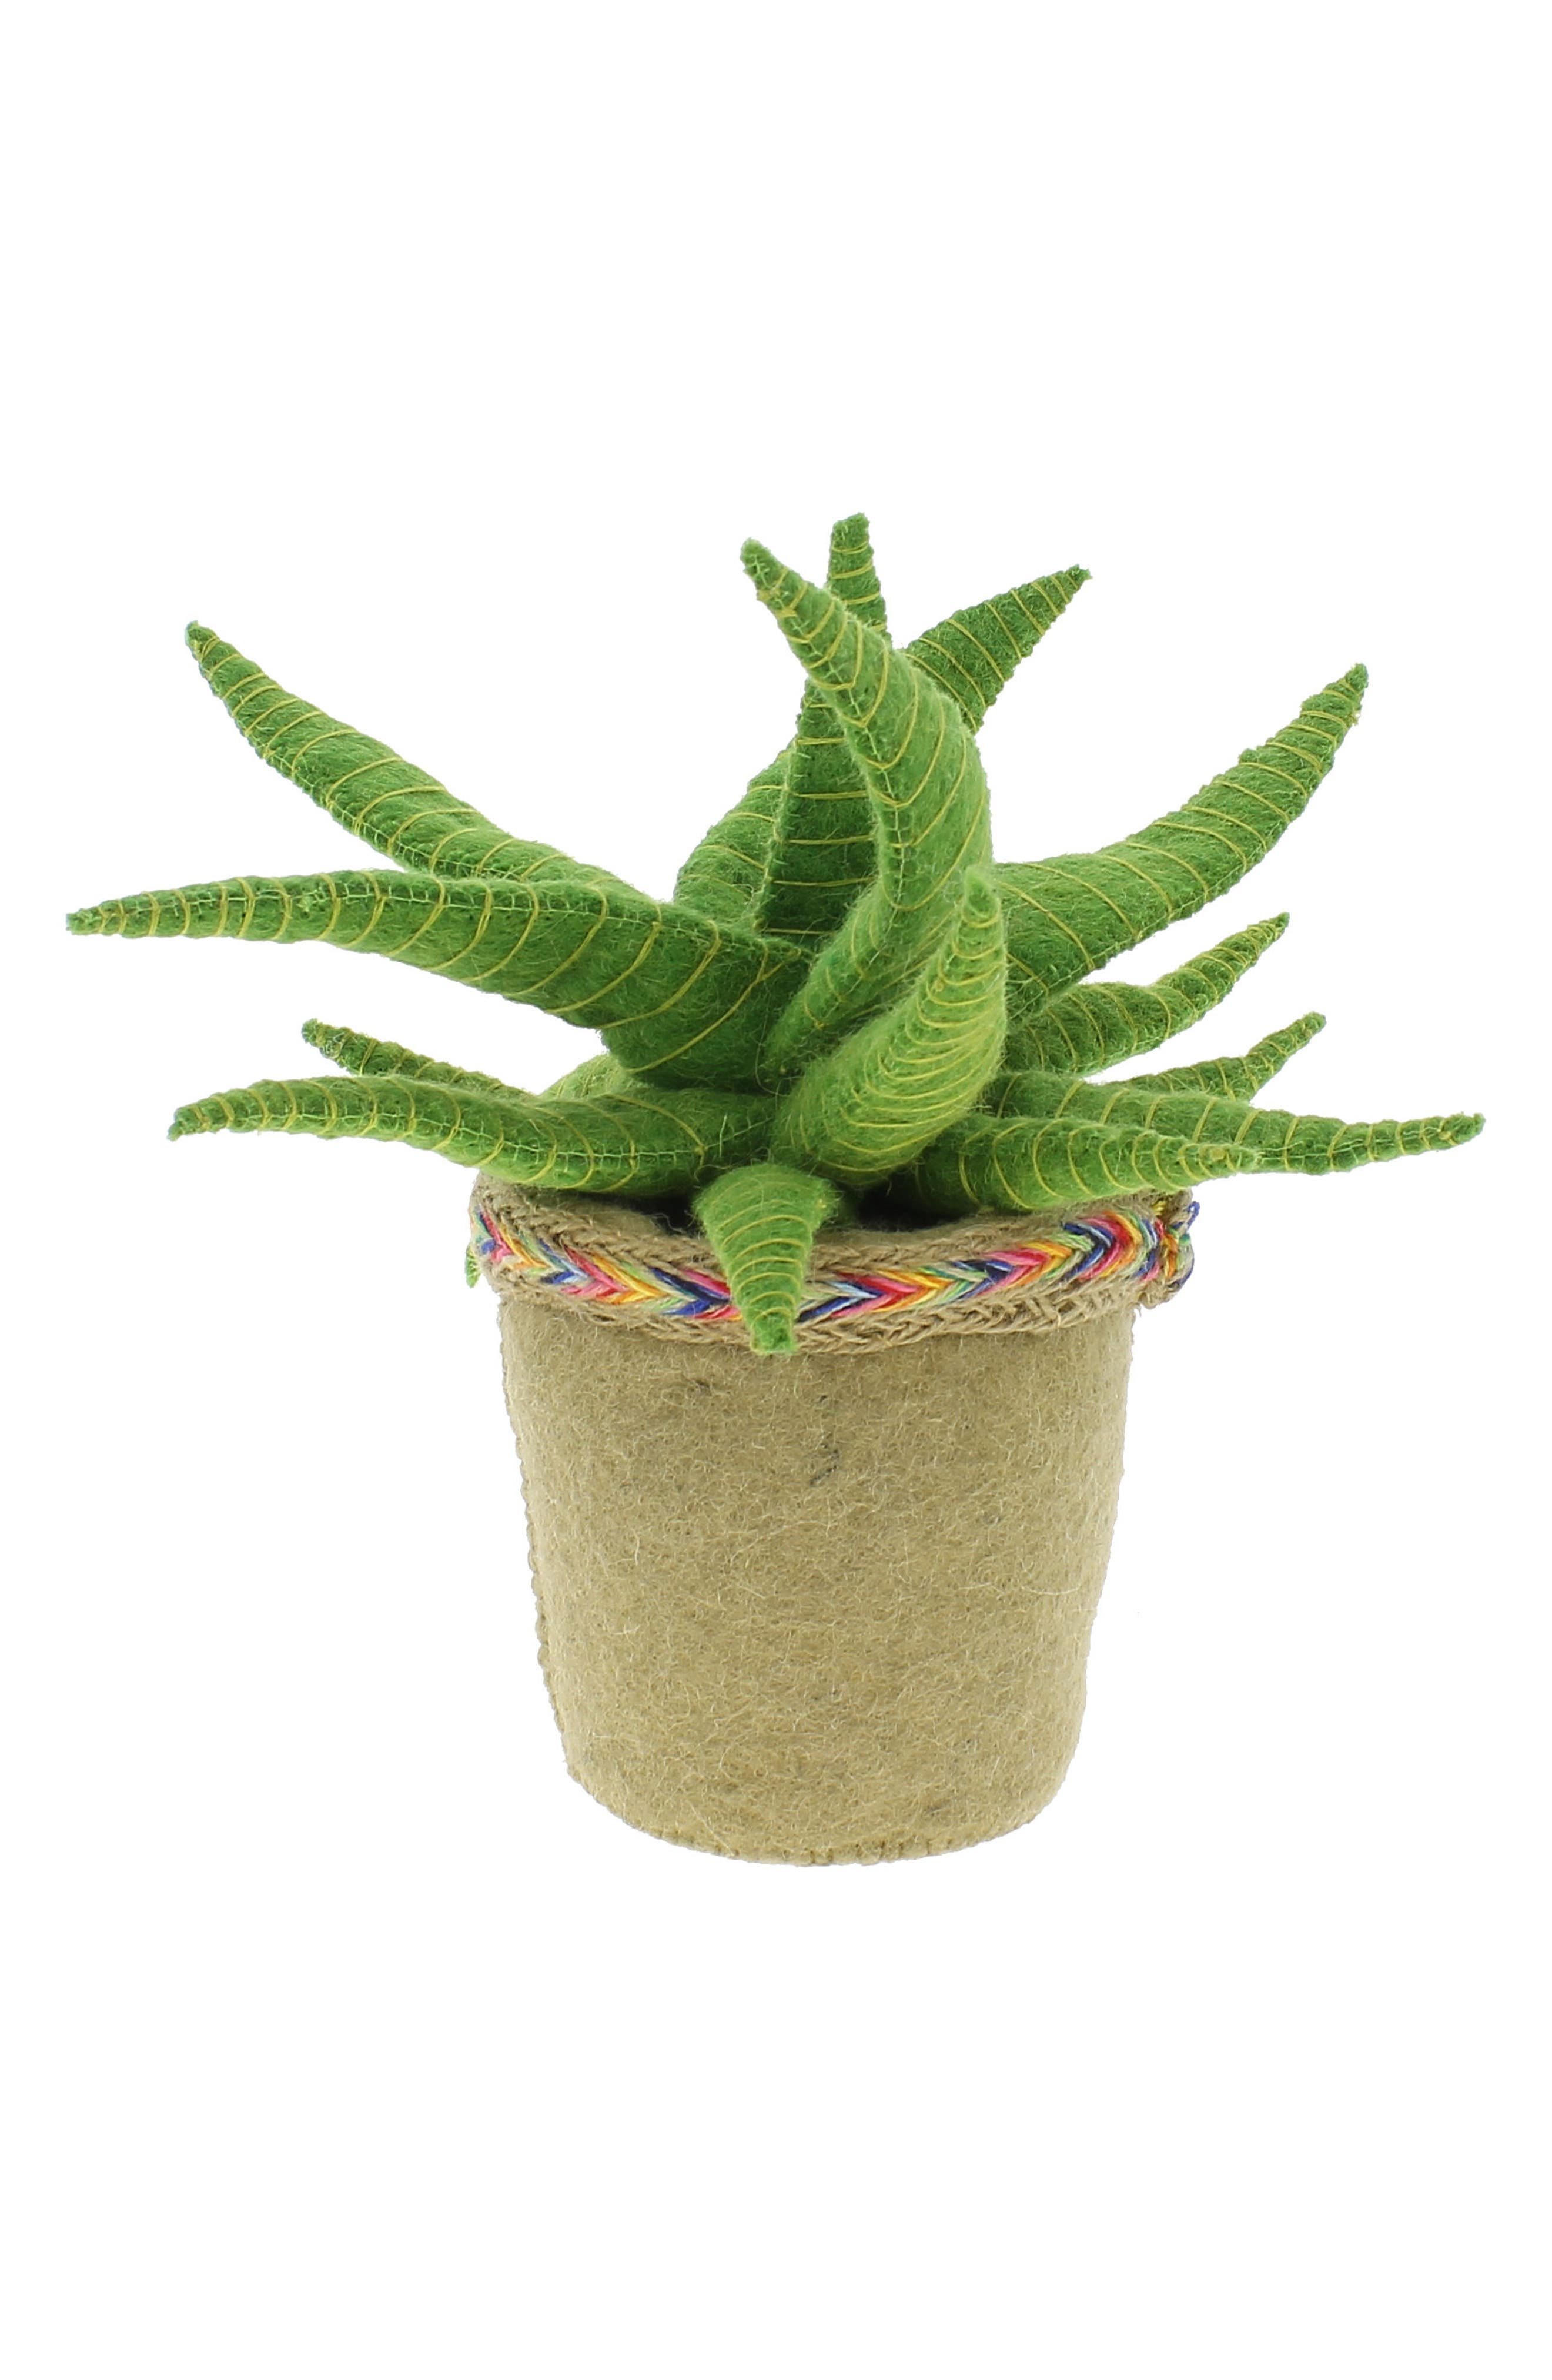 Stuffed Aloe Vera Cactus Weighted Bookend,                             Main thumbnail 1, color,                             Green